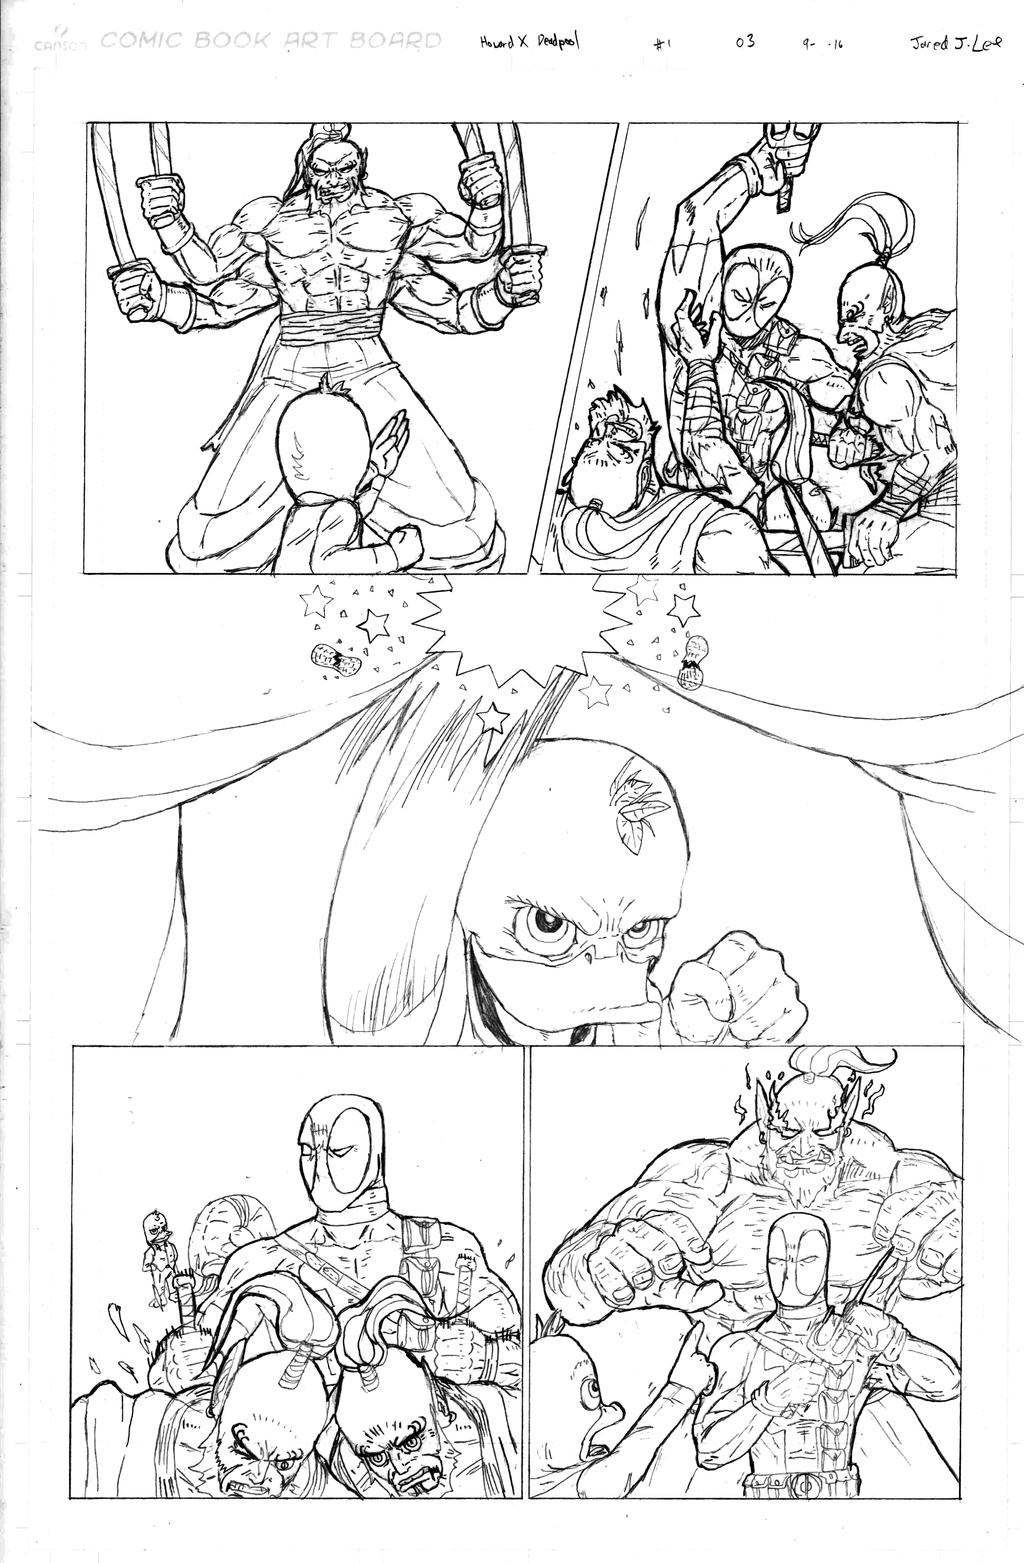 Howard the Duck X Deadpool page 03 by jaredjlee